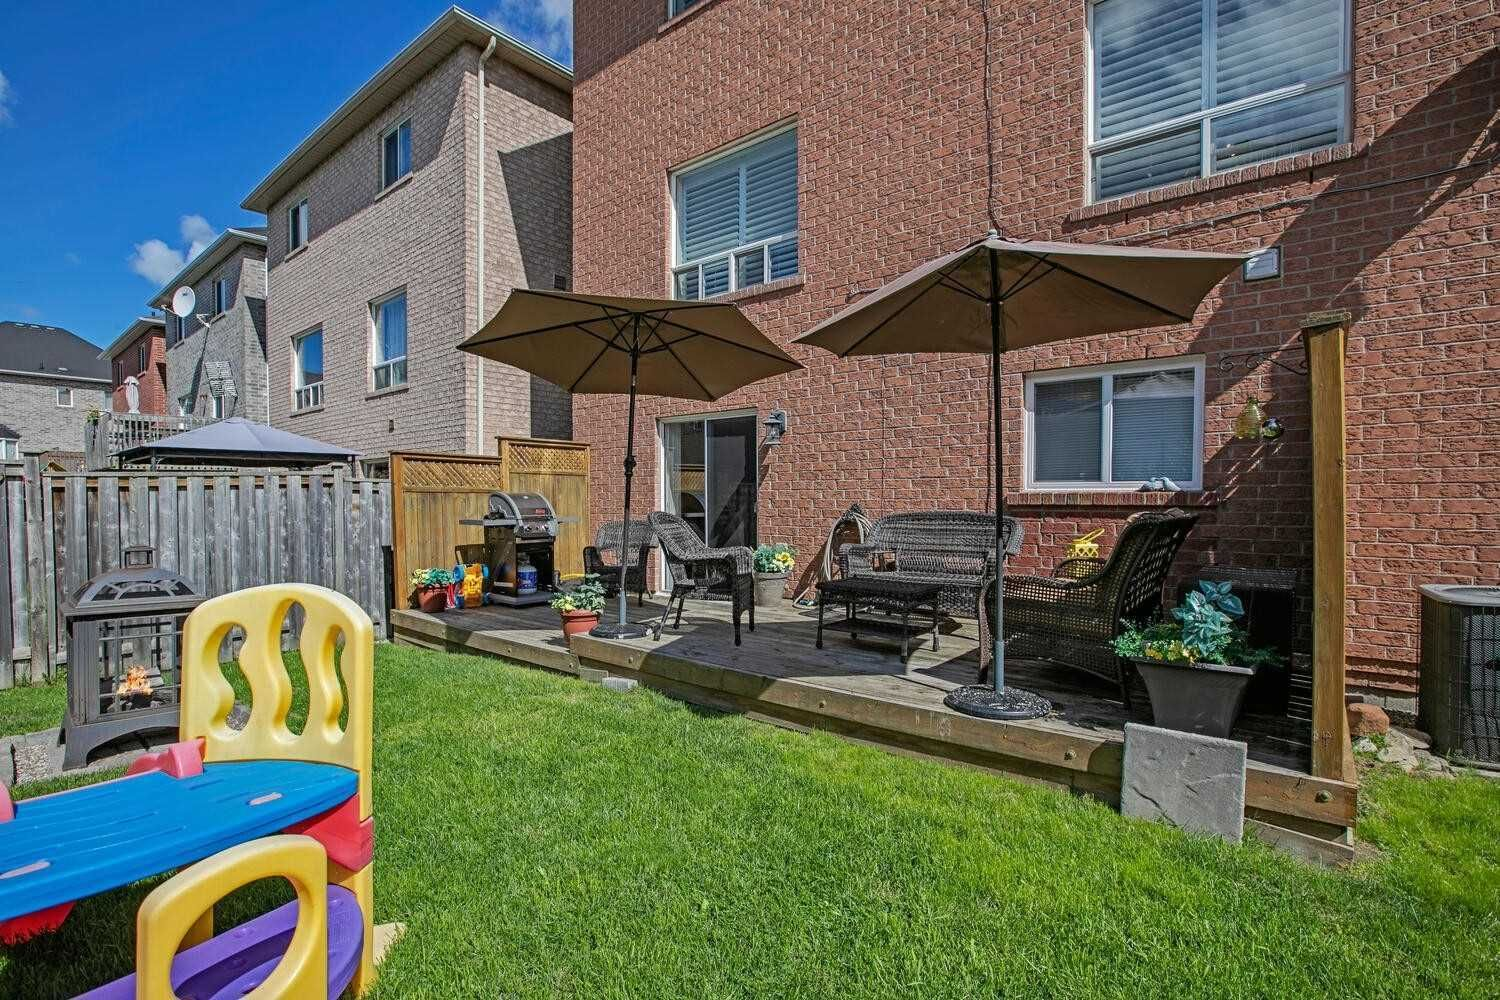 Photo 23: Photos: 190 Dean Burton Lane in Newmarket: Woodland Hill House (2-Storey) for sale : MLS®# N4918510